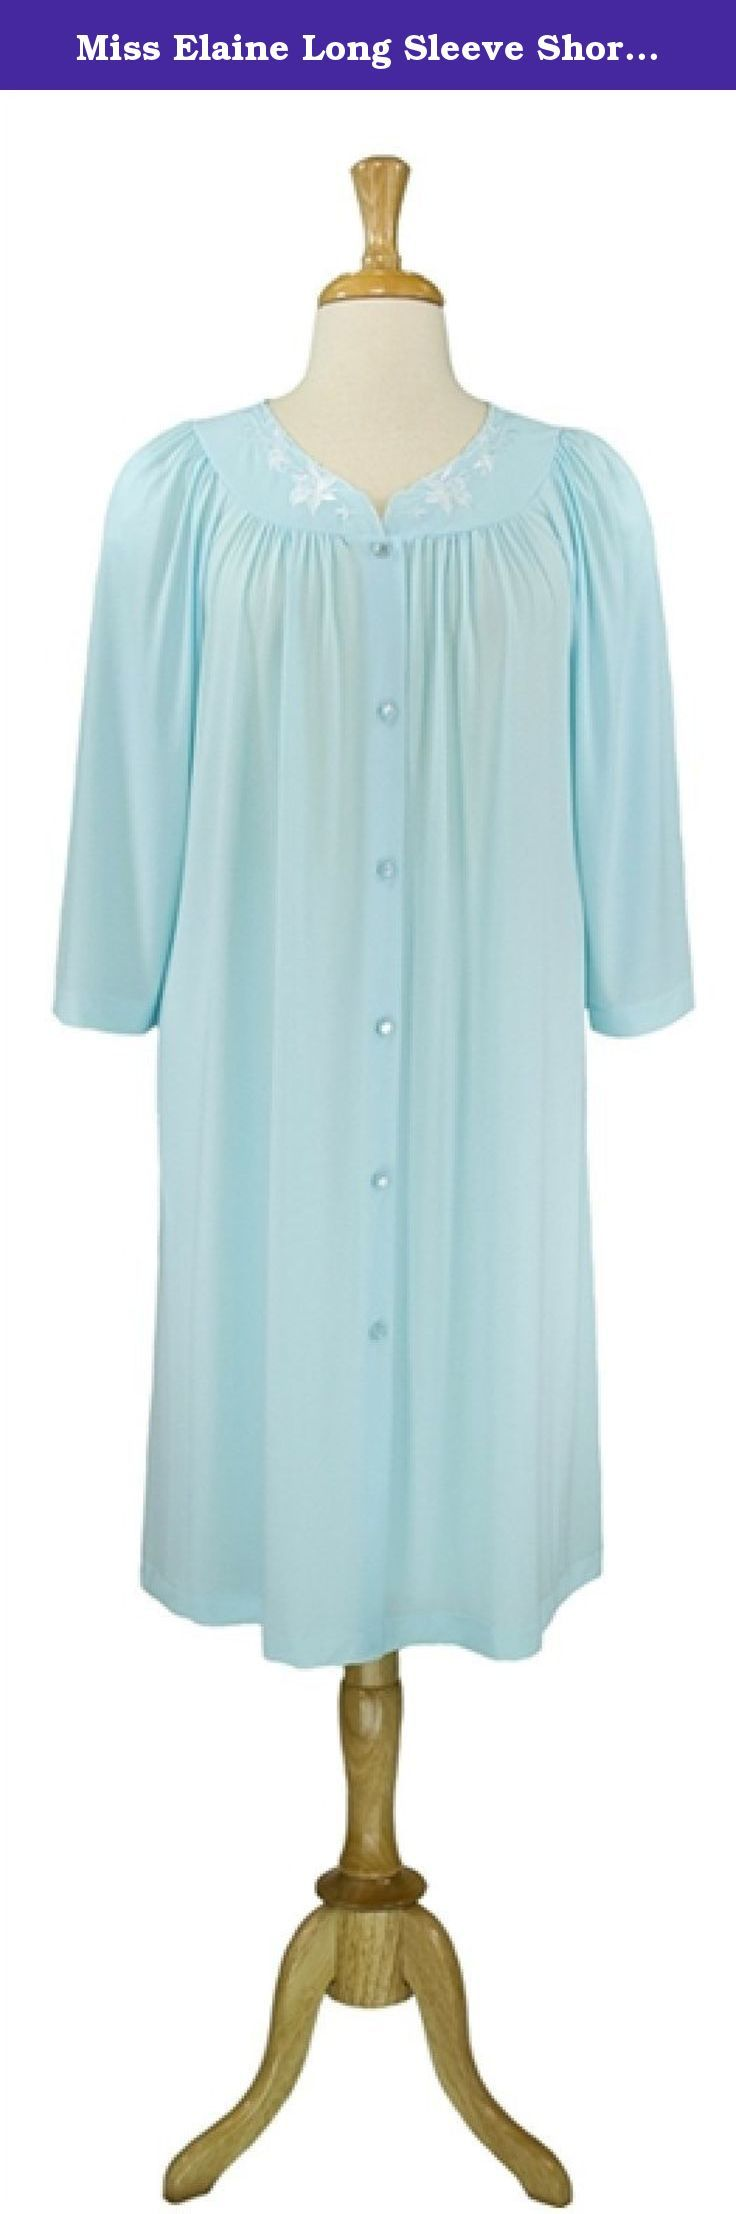 Miss Elaine Long Sleeve Short Robe 35809 (X Large, Seafoam). Miss Elaine® Short Button Robe. Embroidered applique at scalloped yoke. 3/4 length sleeves. Two inset side pockets. Small gathers at yoke for more fullness and comfort. Also available in extra sizes. See matching gown 20809.